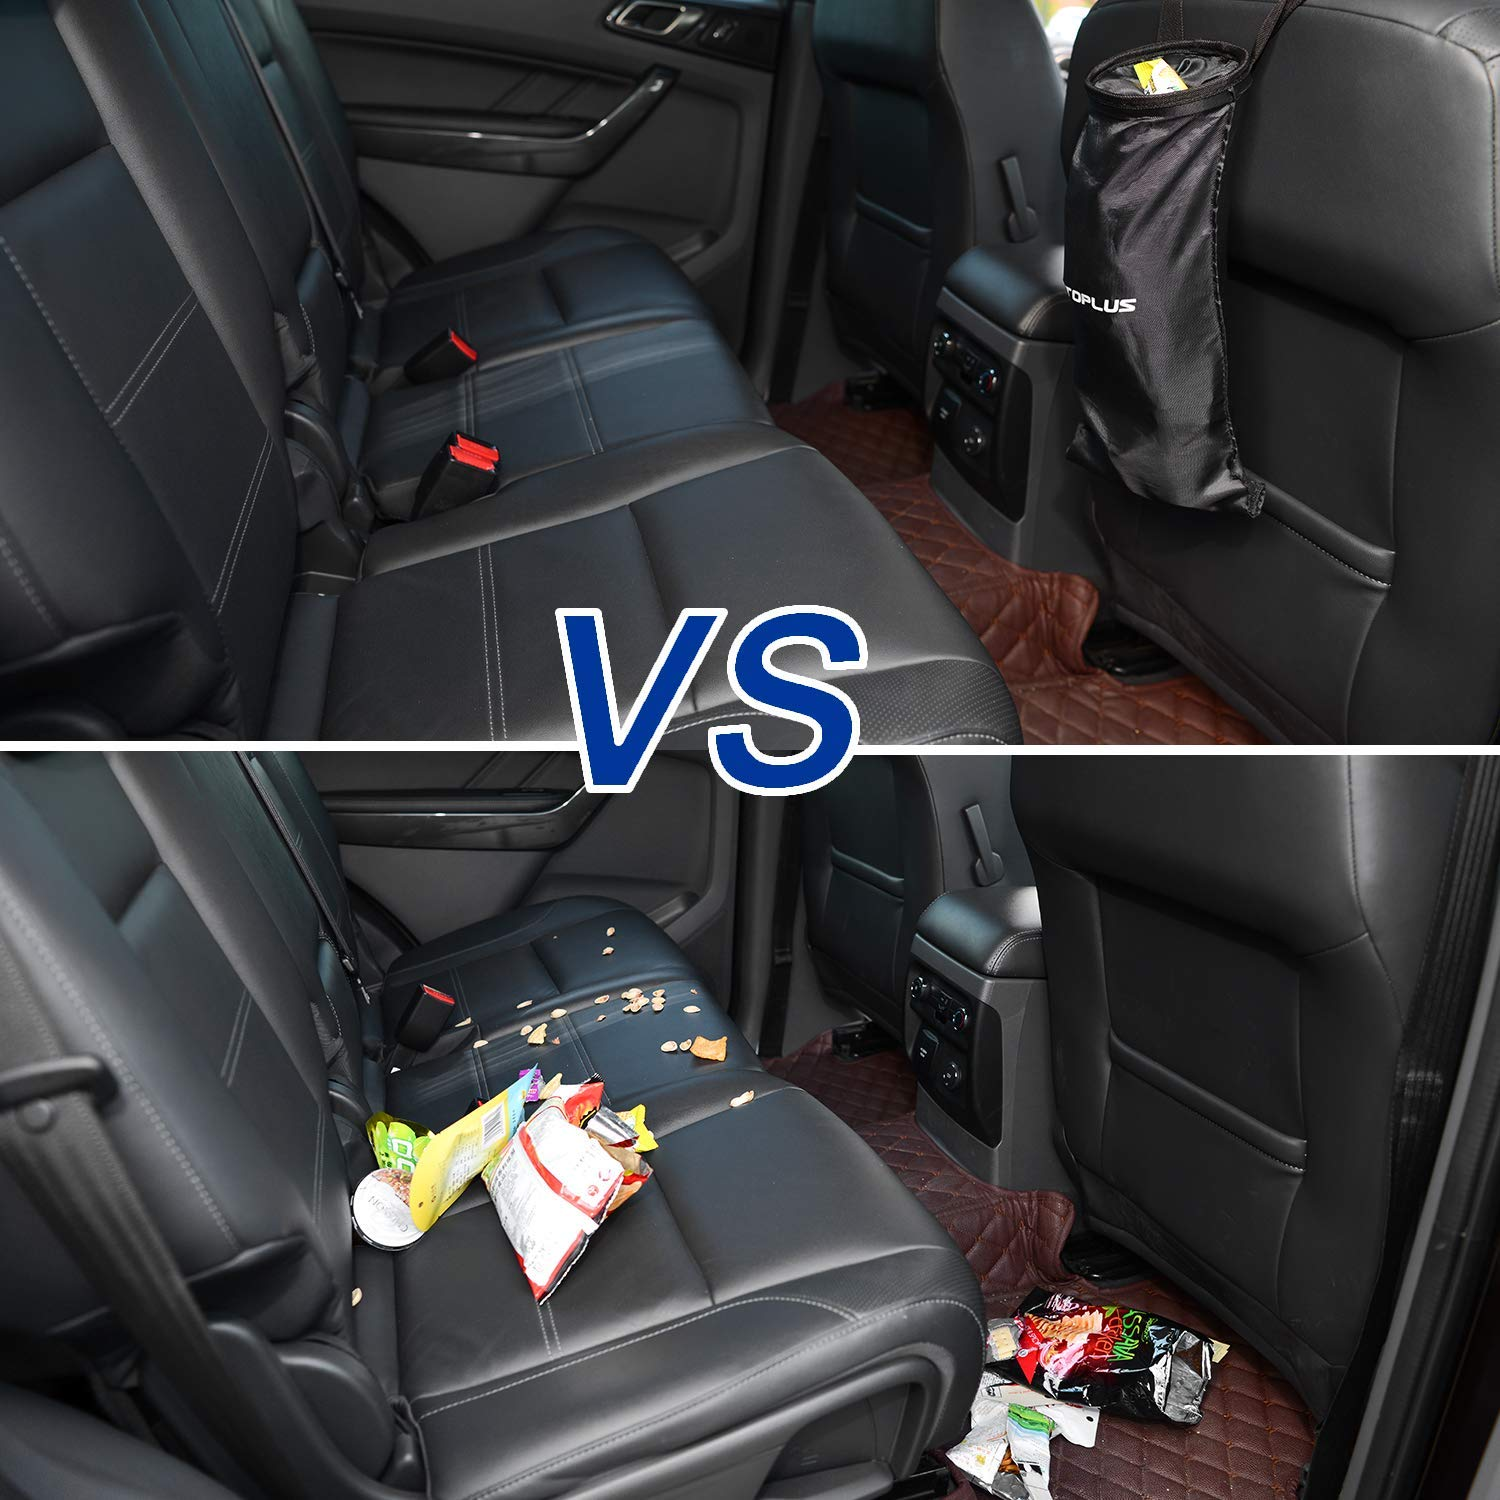 XBRN 2 Pack Car Trash Bags Travelling Vehicle Garbage Can,Seat Back Hanging Auto Rubbish Bag,Car Litter Bag,Washable Leakproof Eco-Friendly with Adjustable Strap for Car Outdoor and Vehicle Uses